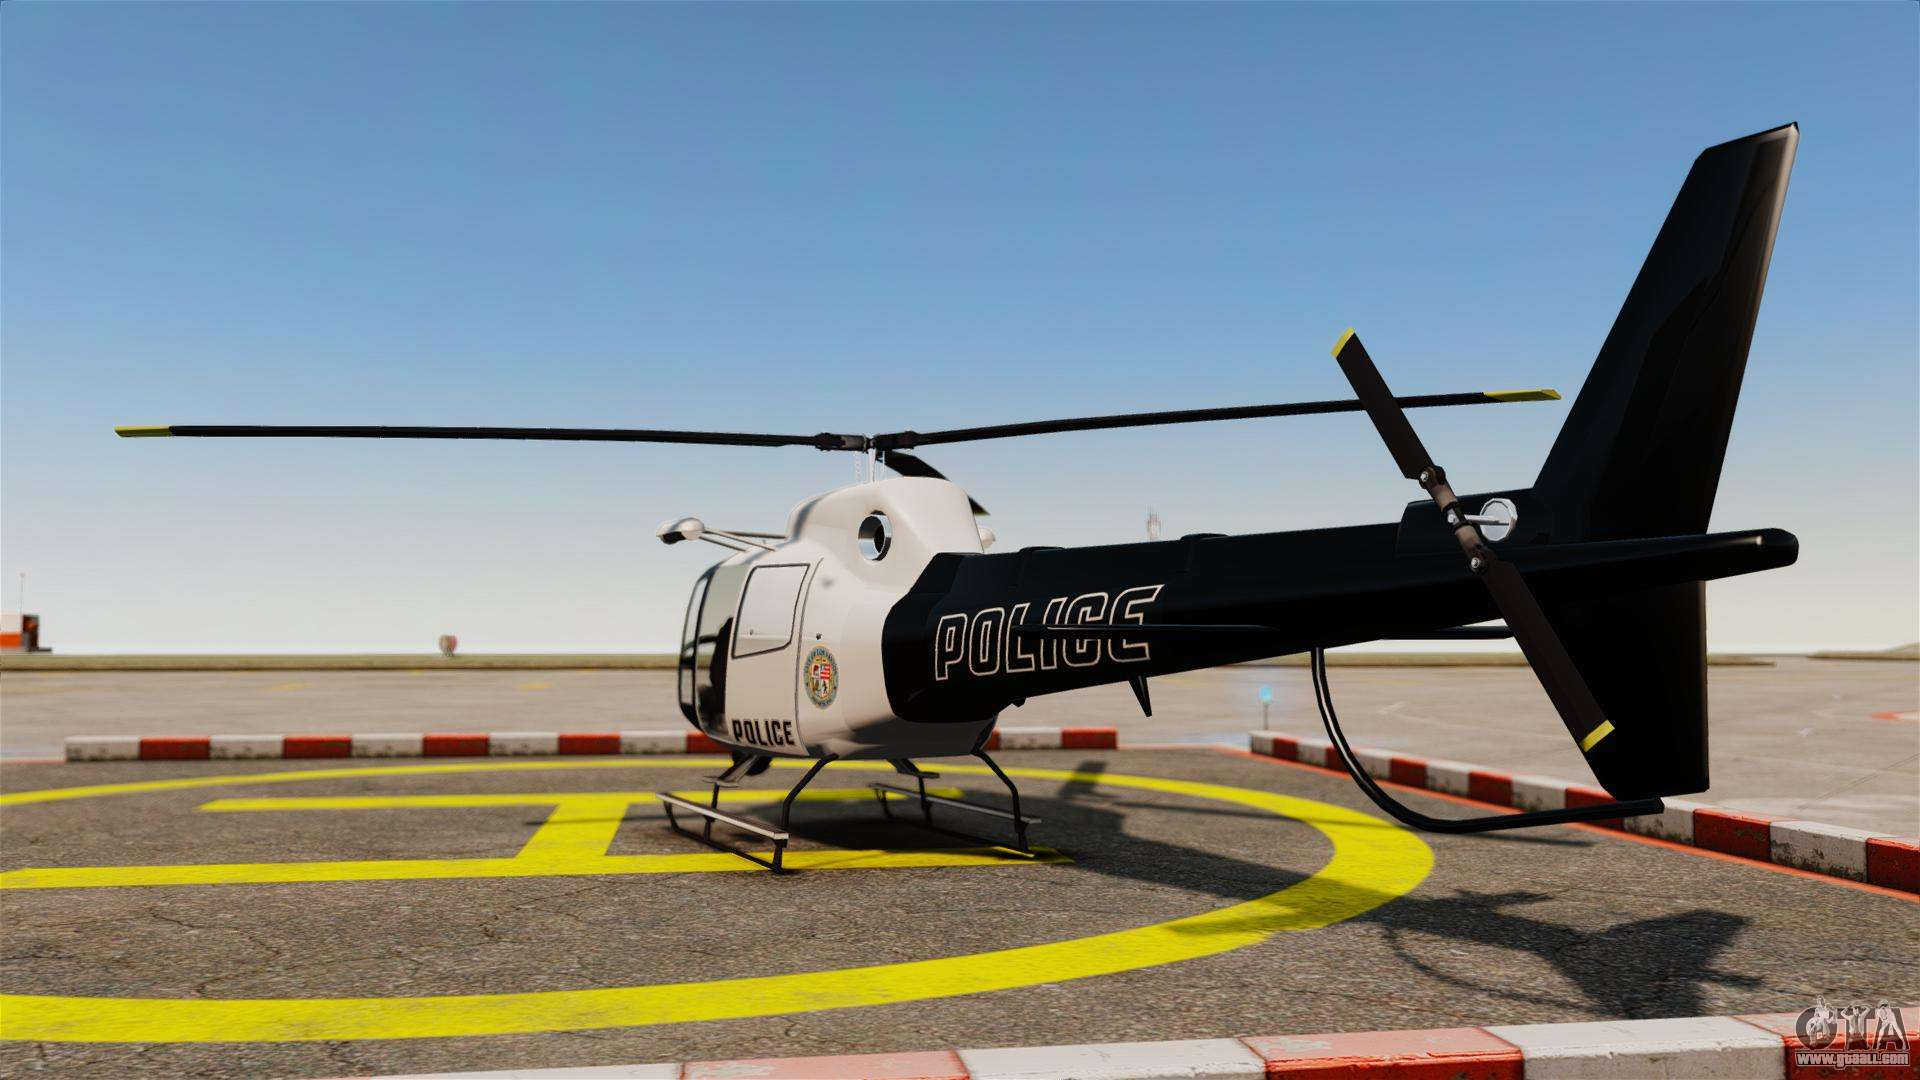 helicopter mod 1 6 4 with 34145 Gta V Police Maverick on 16916 Mi 26 additionally 1124 Thx Helicopter also 4k Us Park Ranger And Us Forest Ranger Skins For Ford Explorer And Ford Raptor furthermore 70926 Police Cars Pack Els likewise 7710 Five Nights At Freddys 1710.